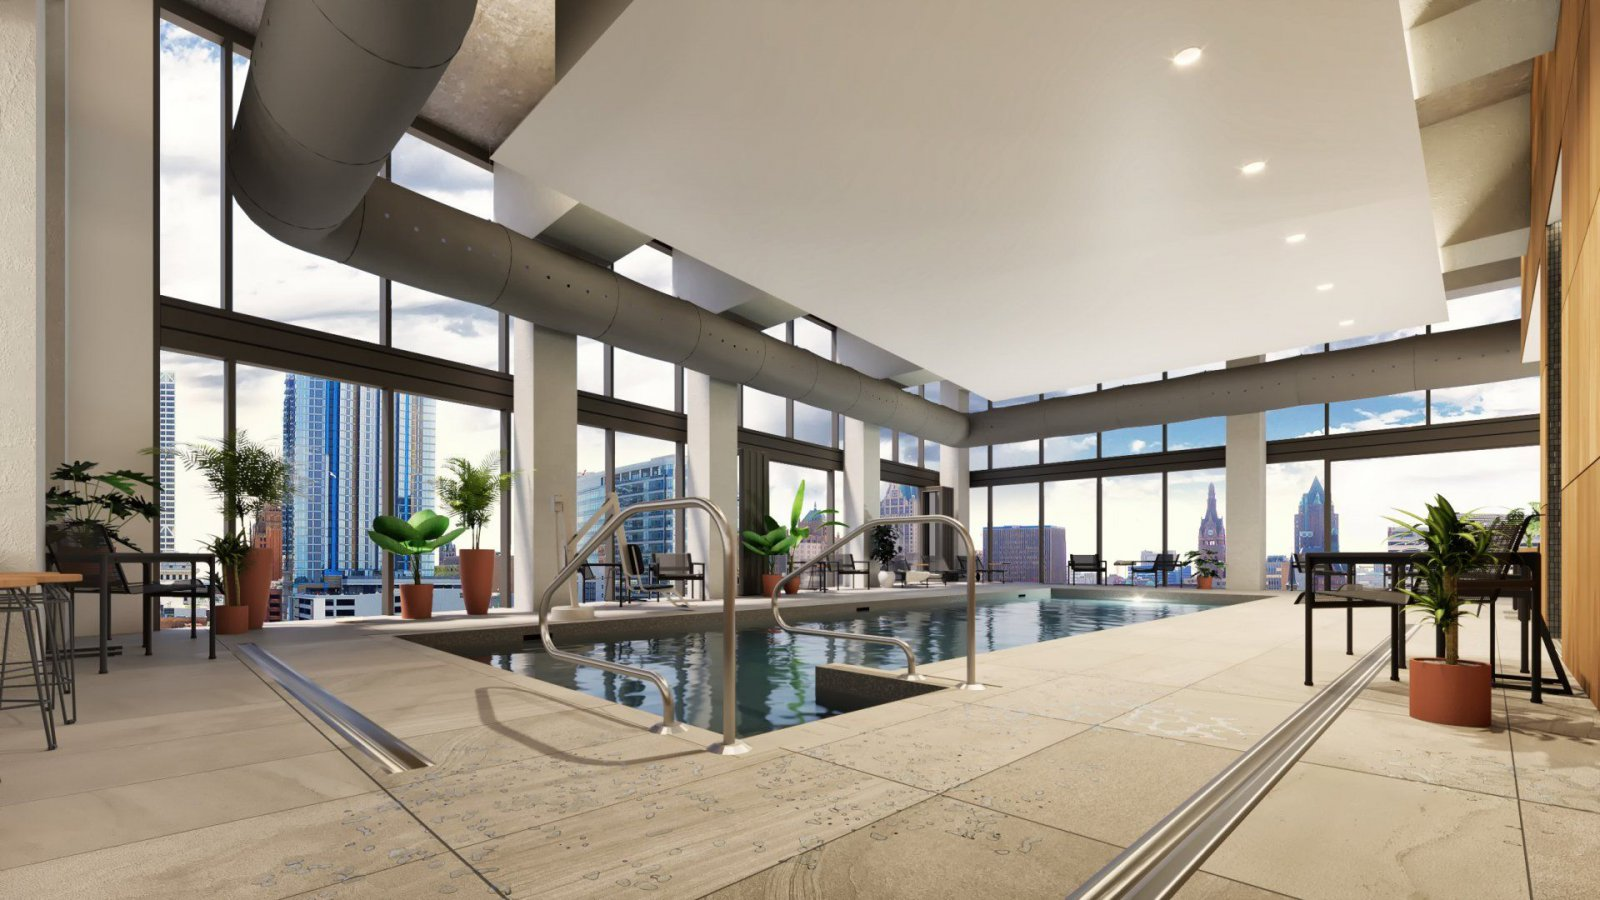 Ascent Pool Rendering